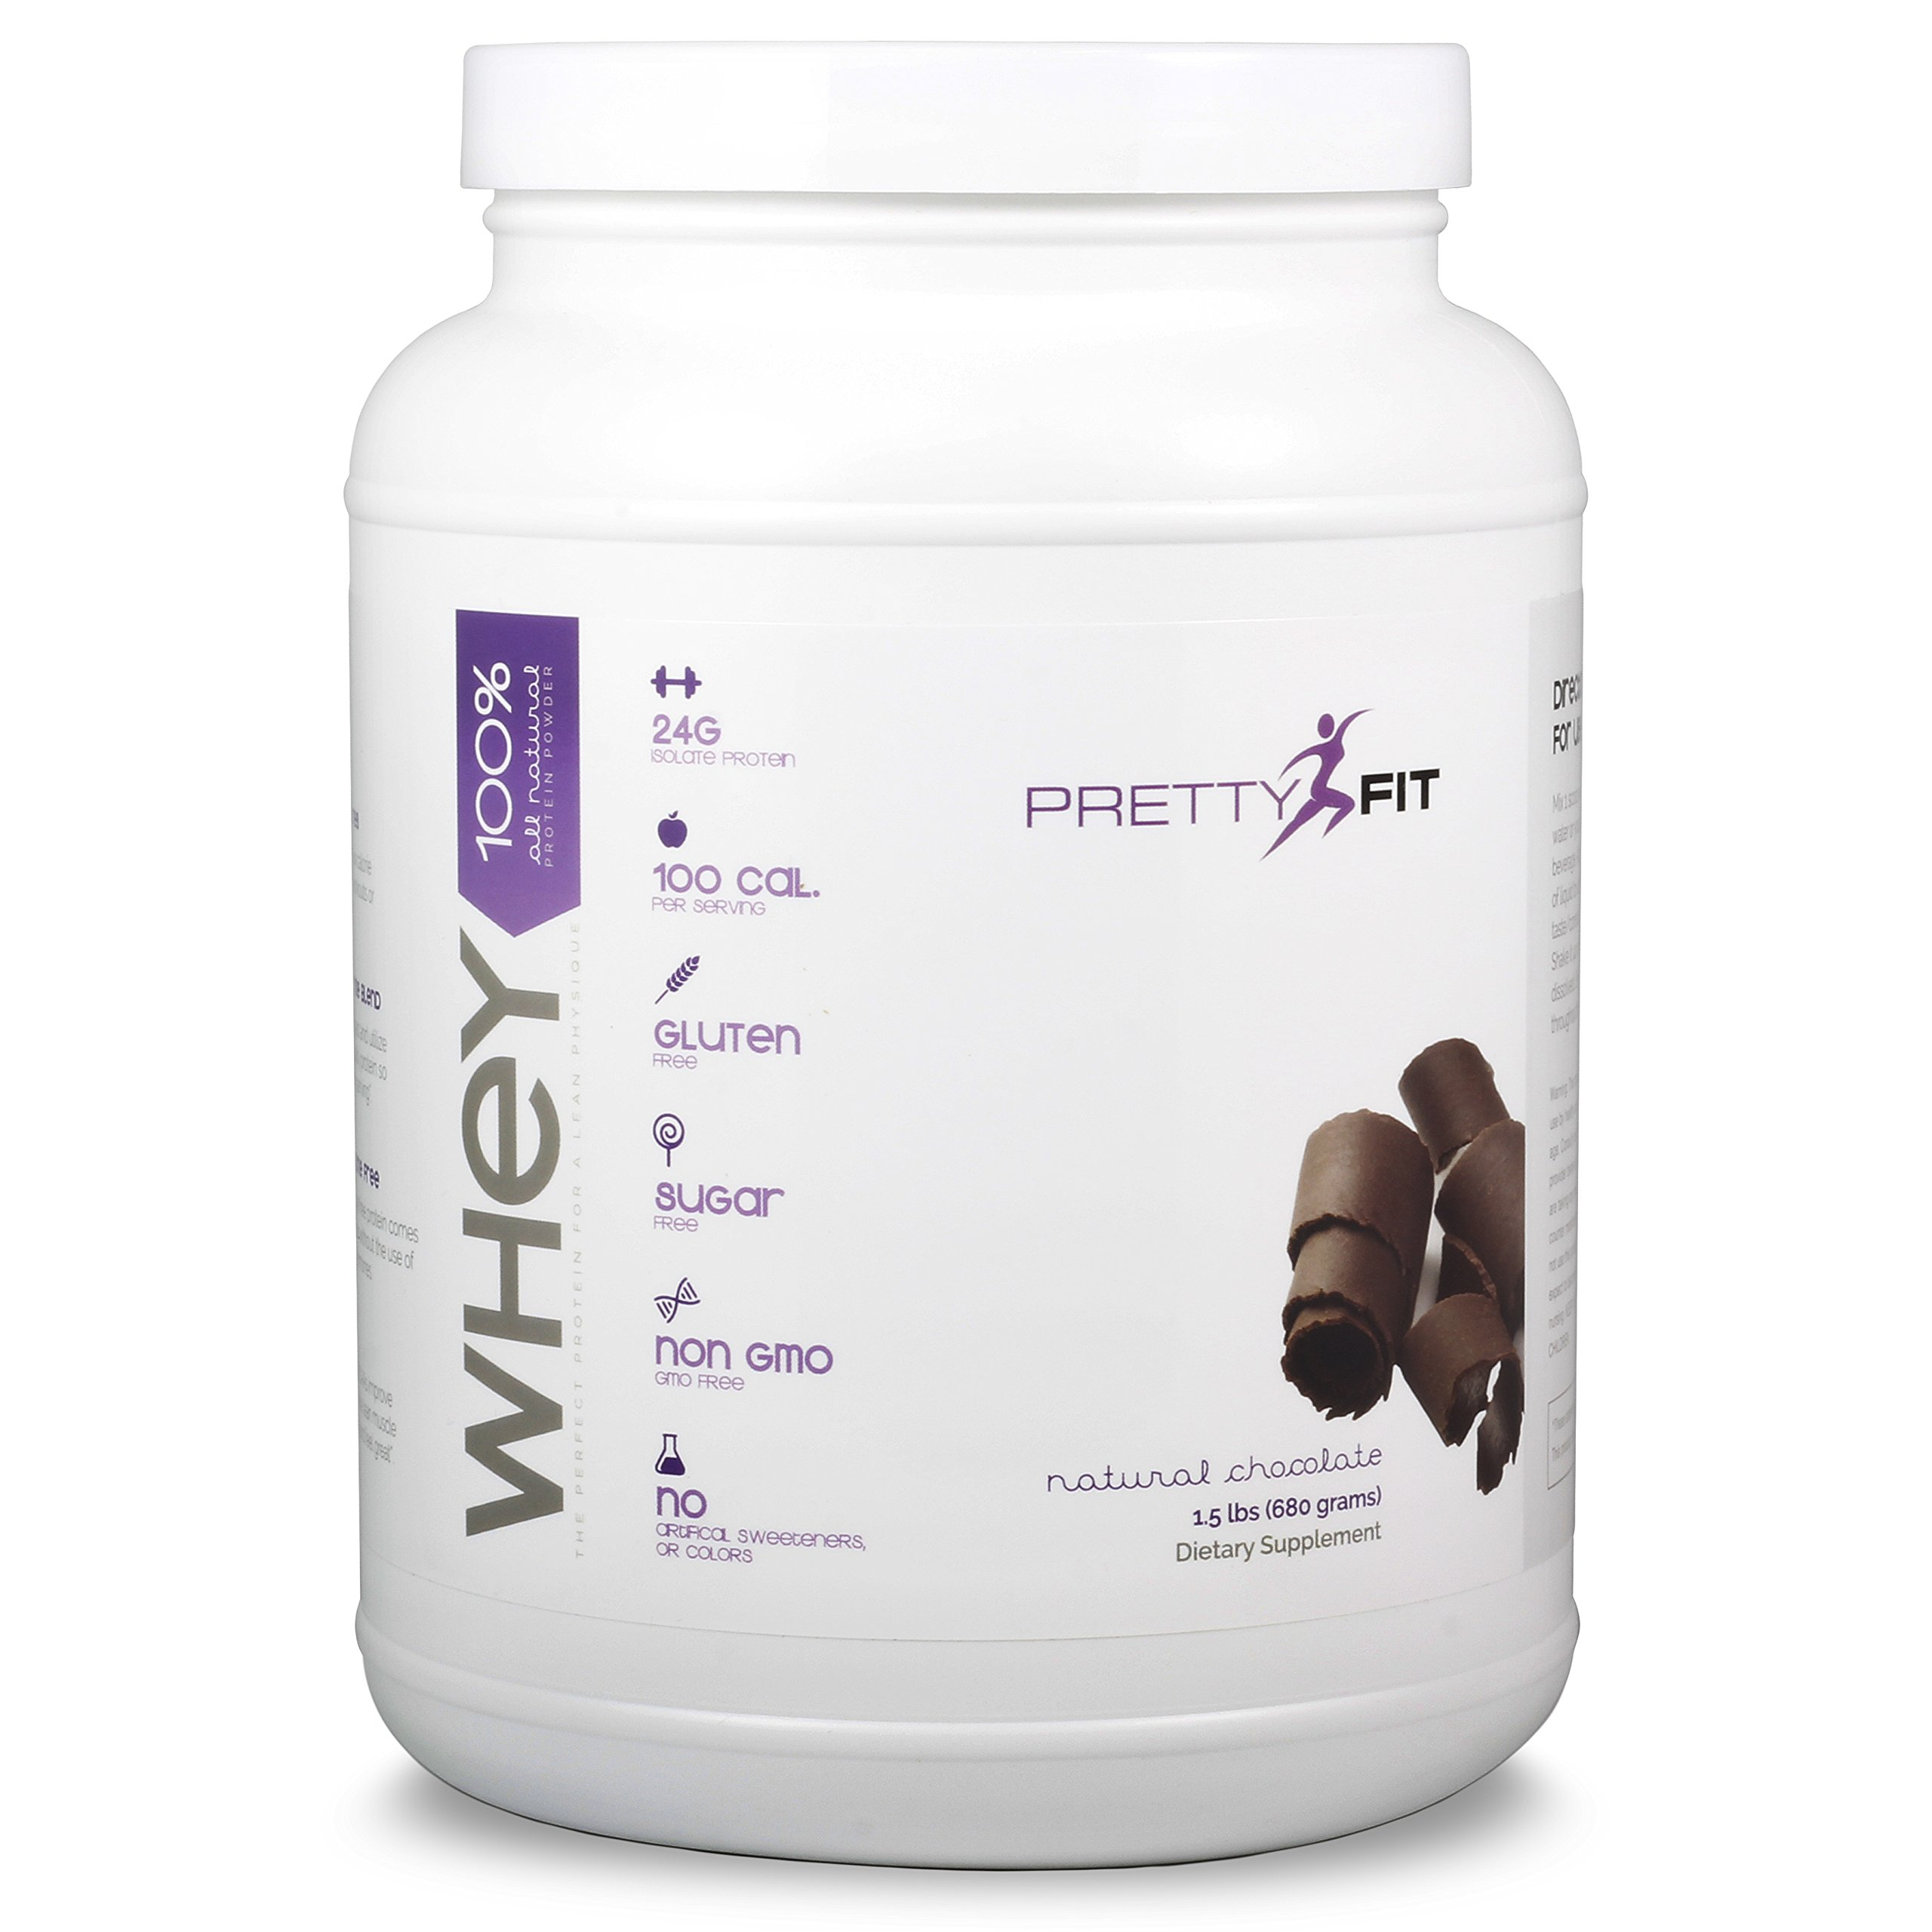 PrettyFit All-Natural Whey Protein Isolate - 24 Servings - Whey Protein Powder for Women - 100 Calories, 0 Sugars, <1g Carbs, Gluten-Free, w/ Digestive Enzymes (Natural Chocolate)